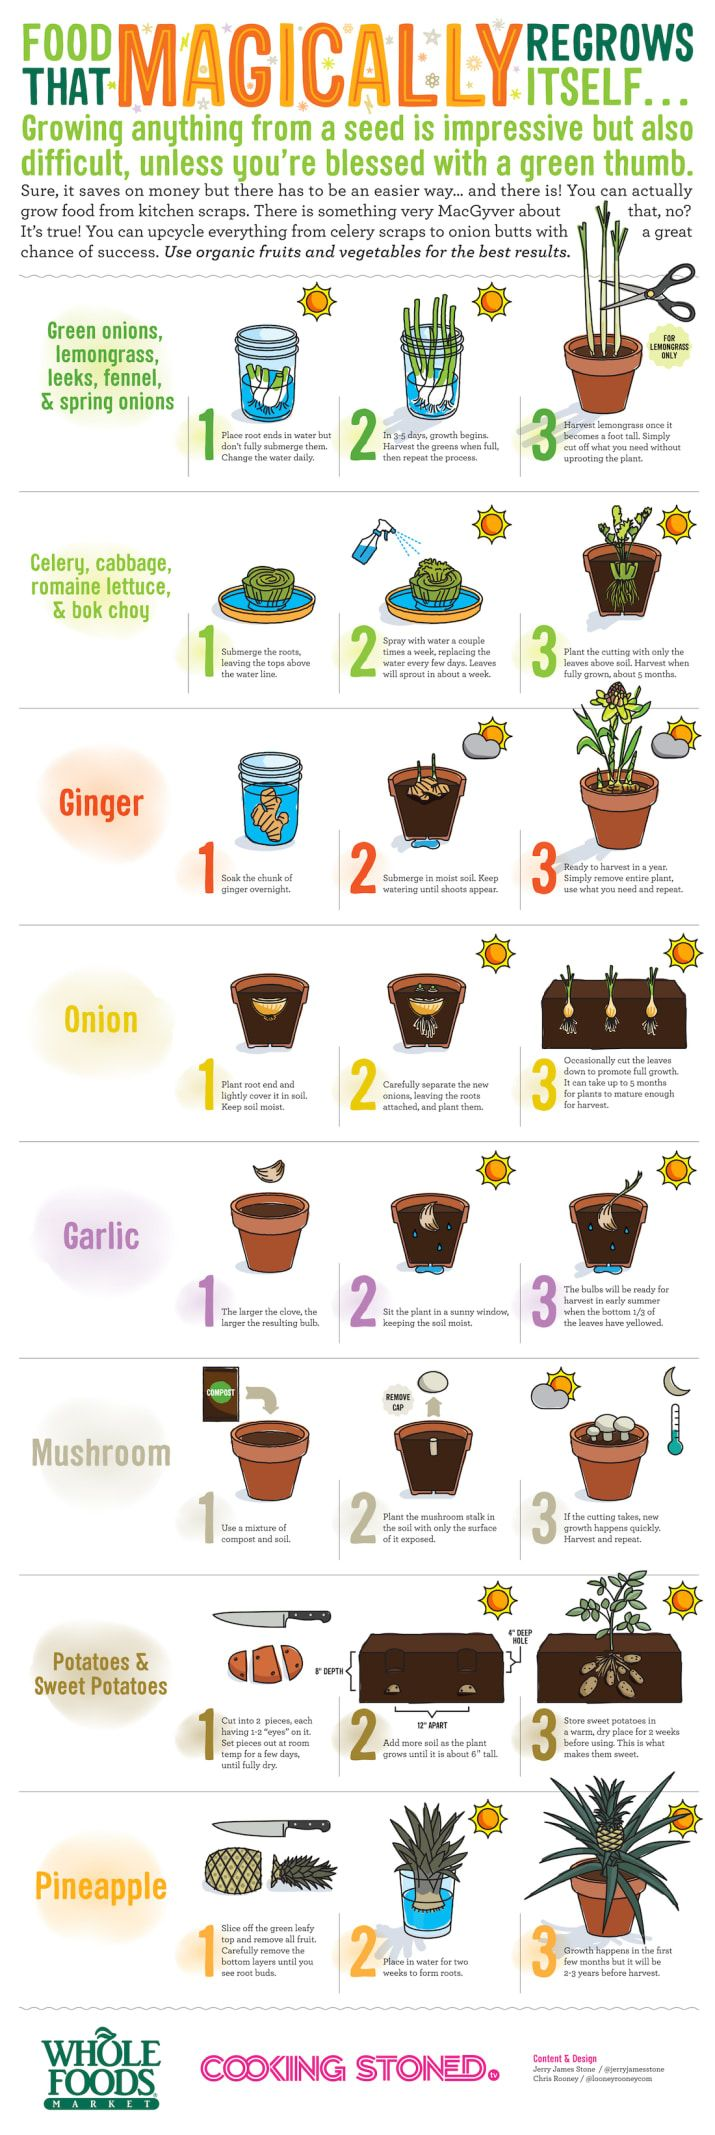 OK, this trend, I'm into. How cool is it that you can regrow all these foods from your leftover scraps?